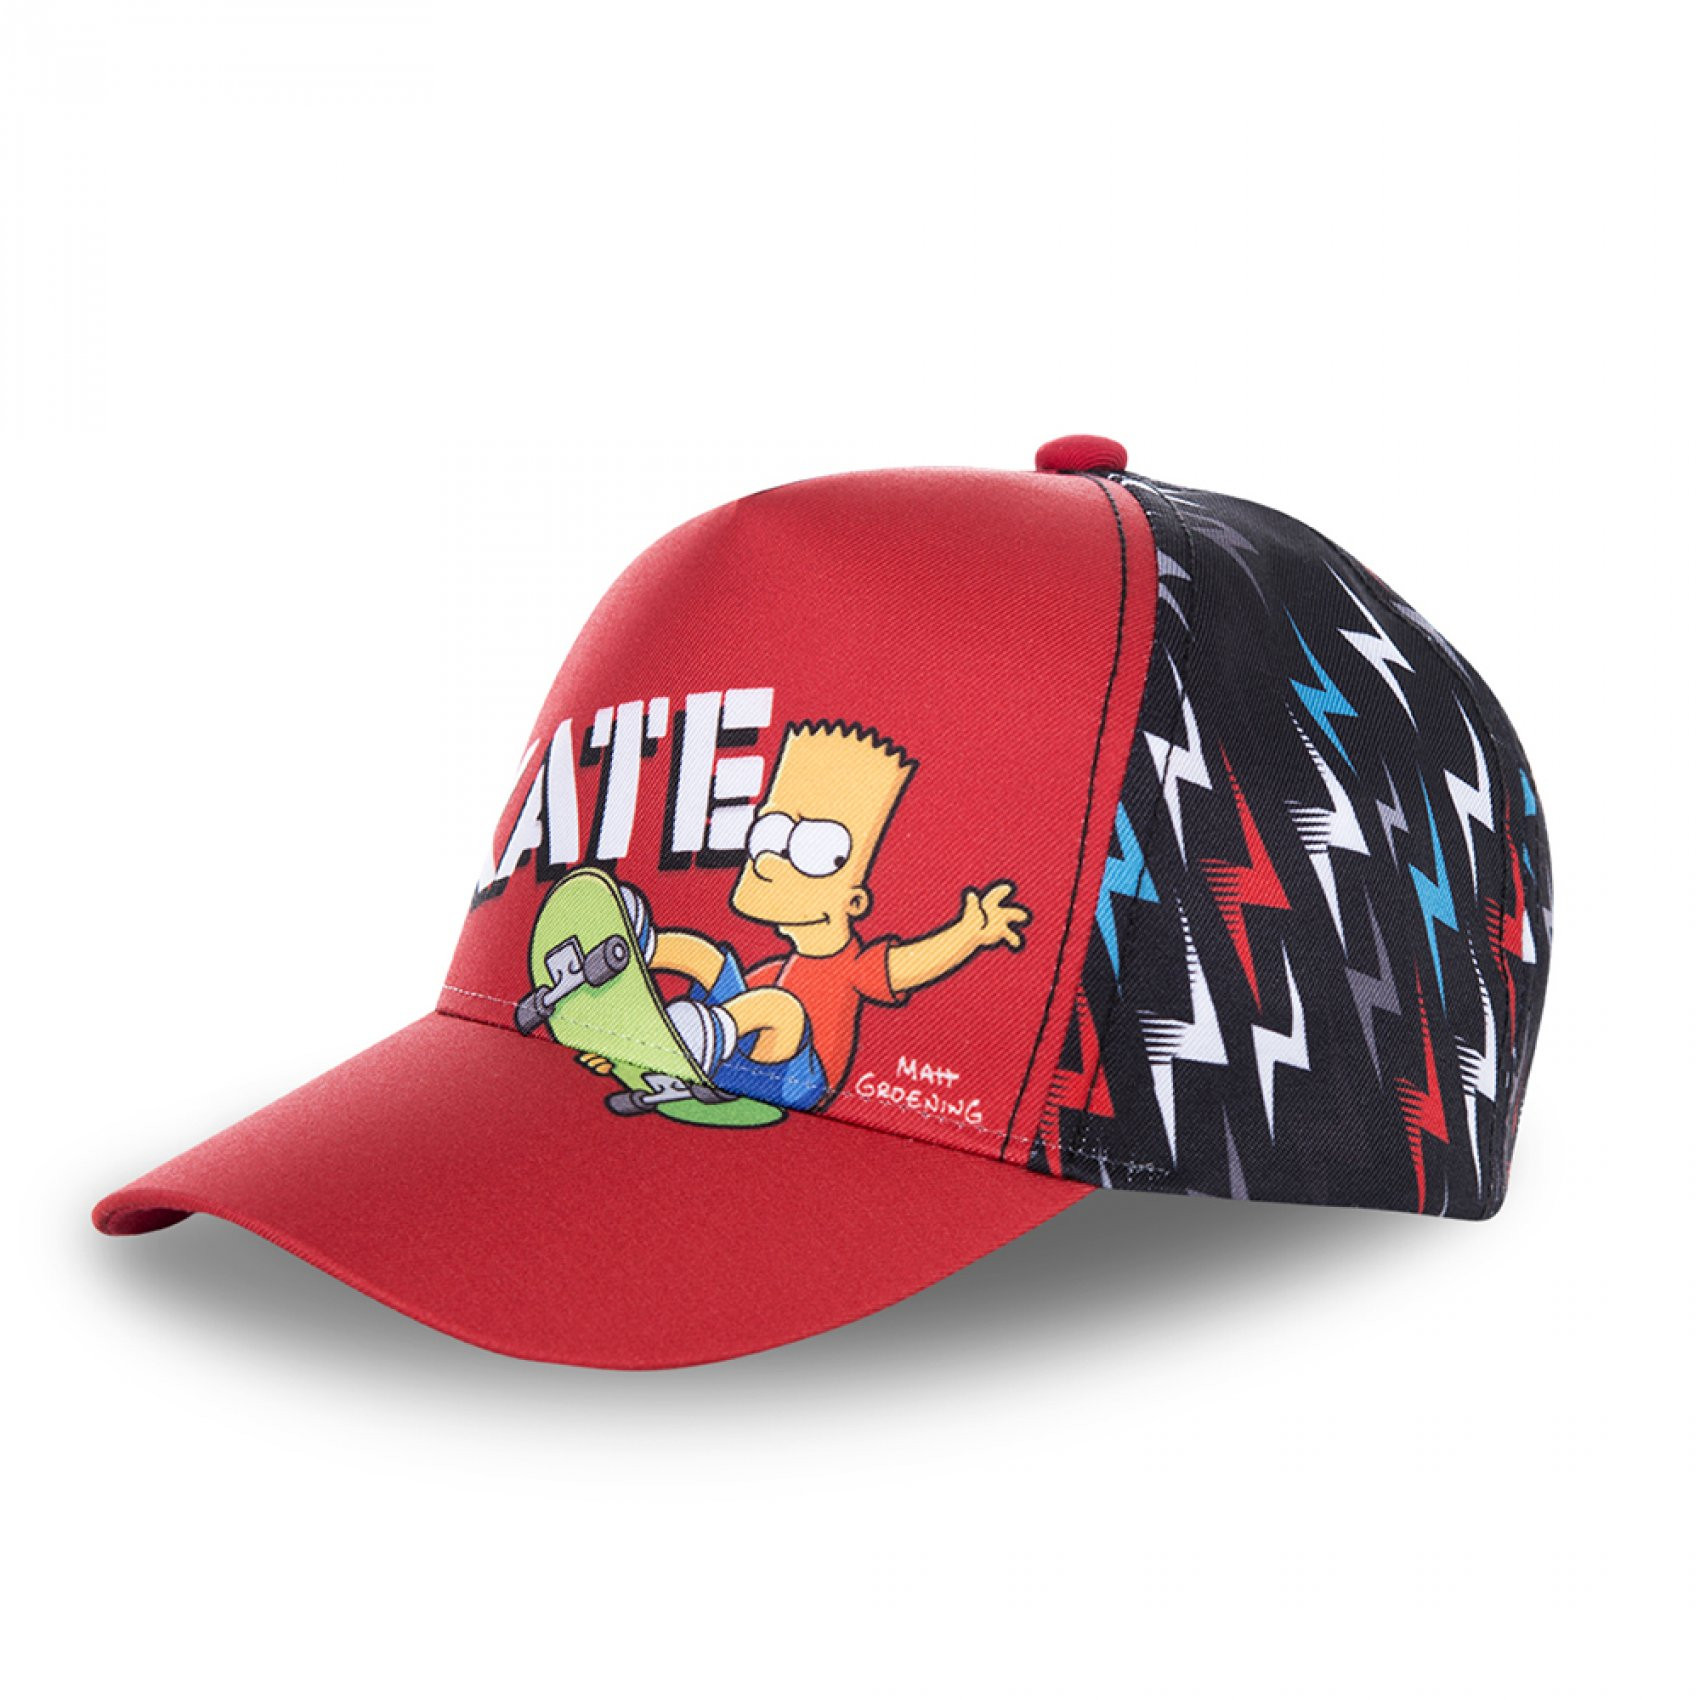 Casquette baseball garçon skate simpsons (photo)